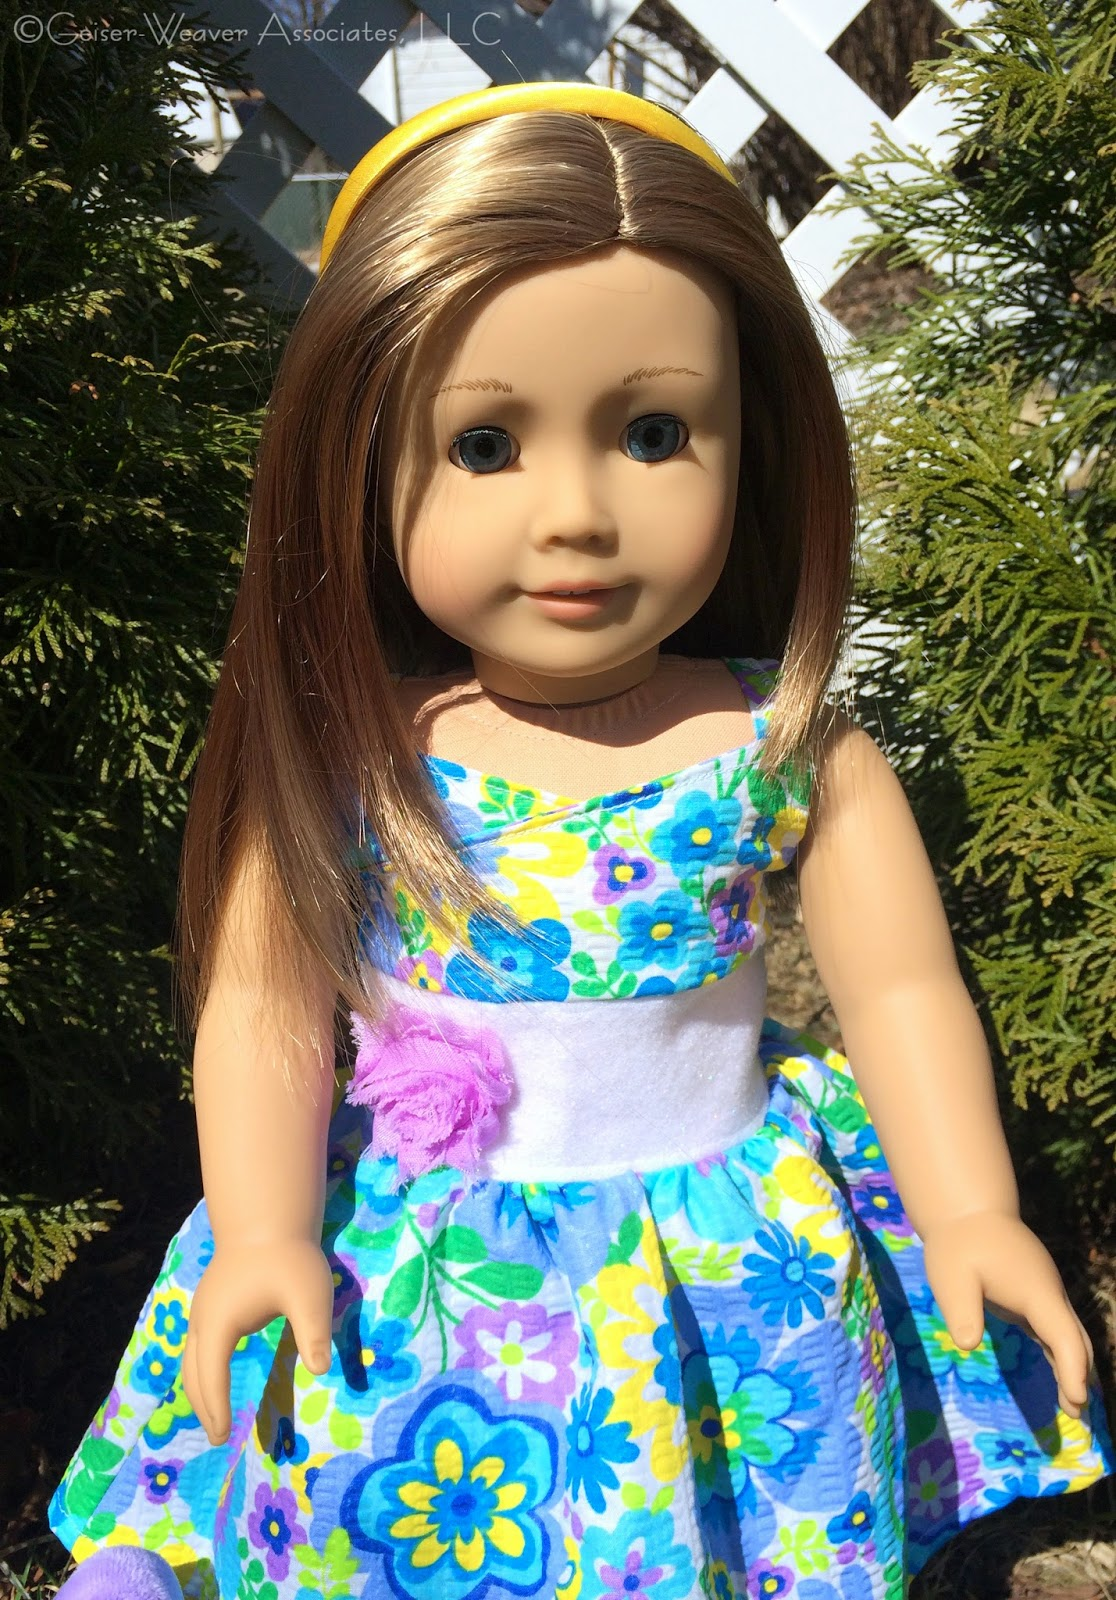 Geiser-Weaver Associates LLC doll clothes: Bree's Easter Dress